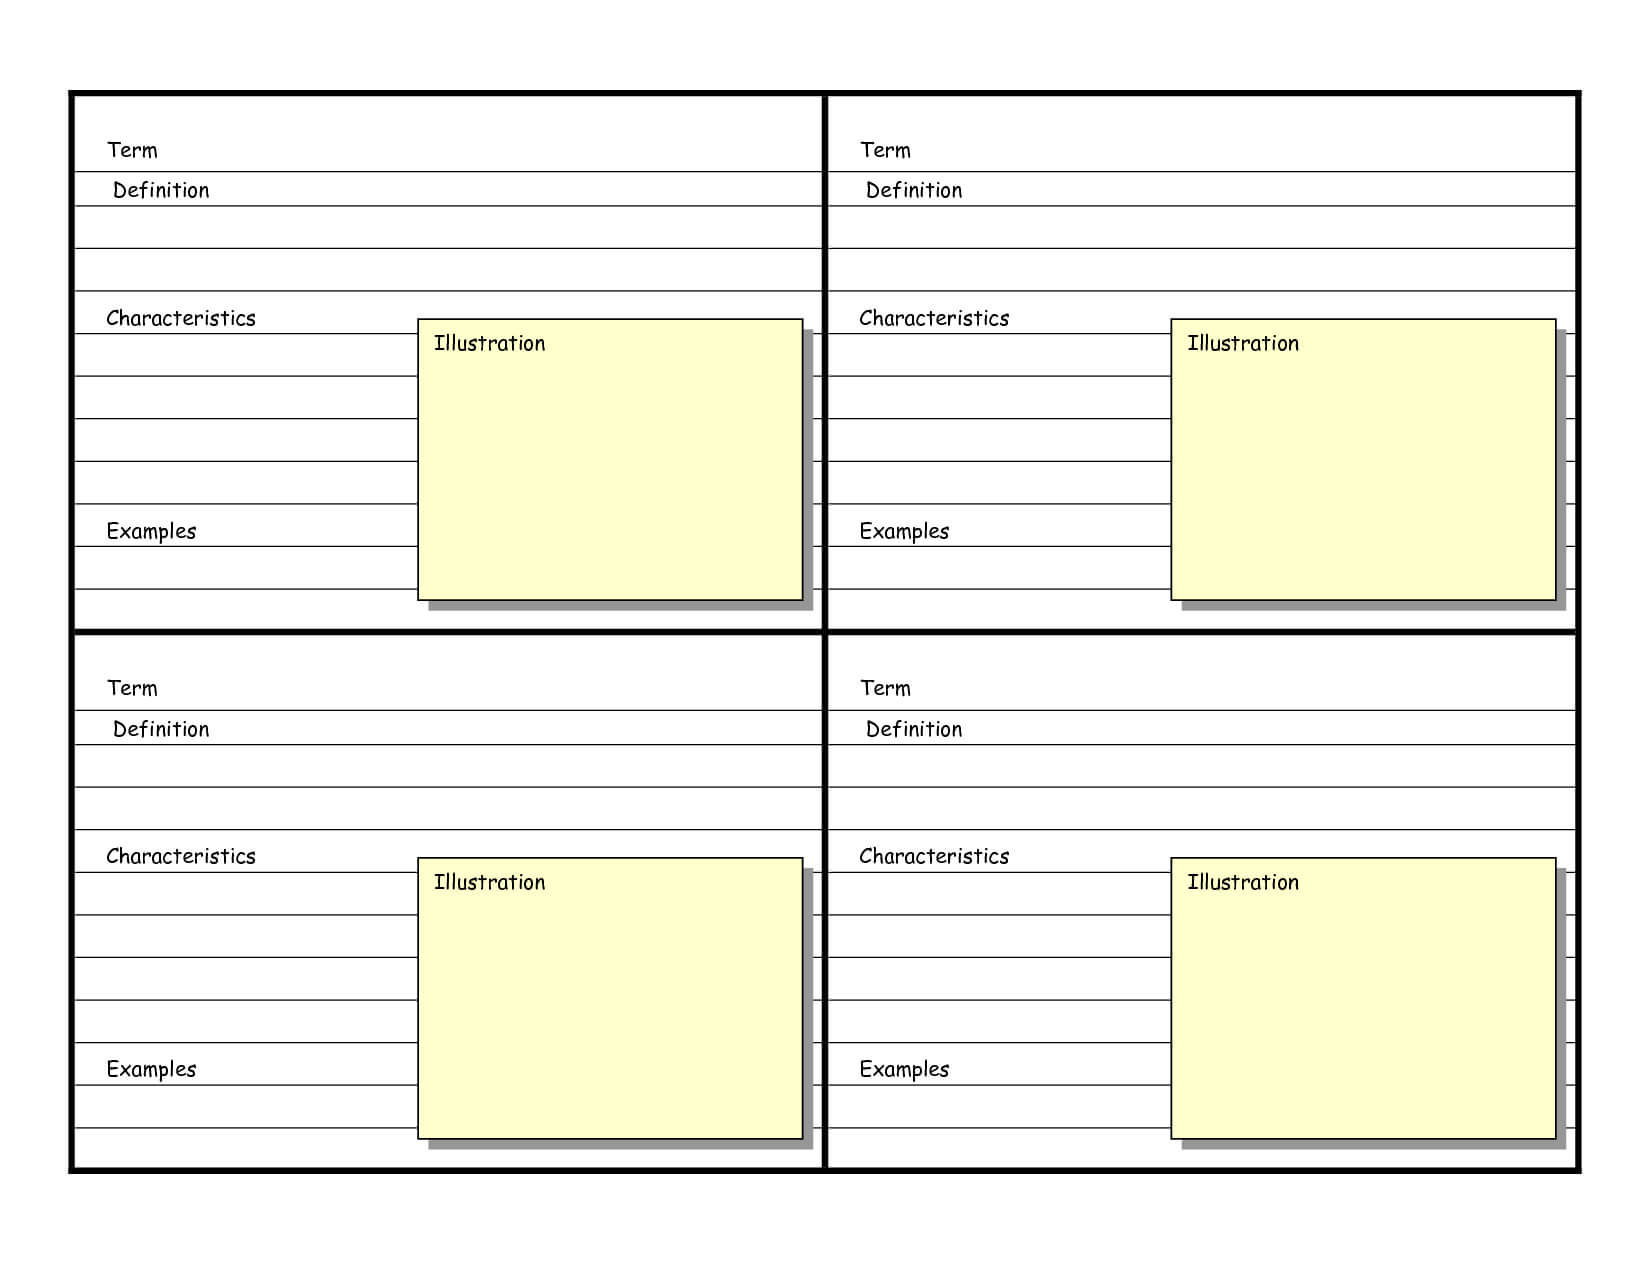 Blank Vocabulary Card Template   Vocabulary Cards Intended For Vocabulary Words Worksheet Template